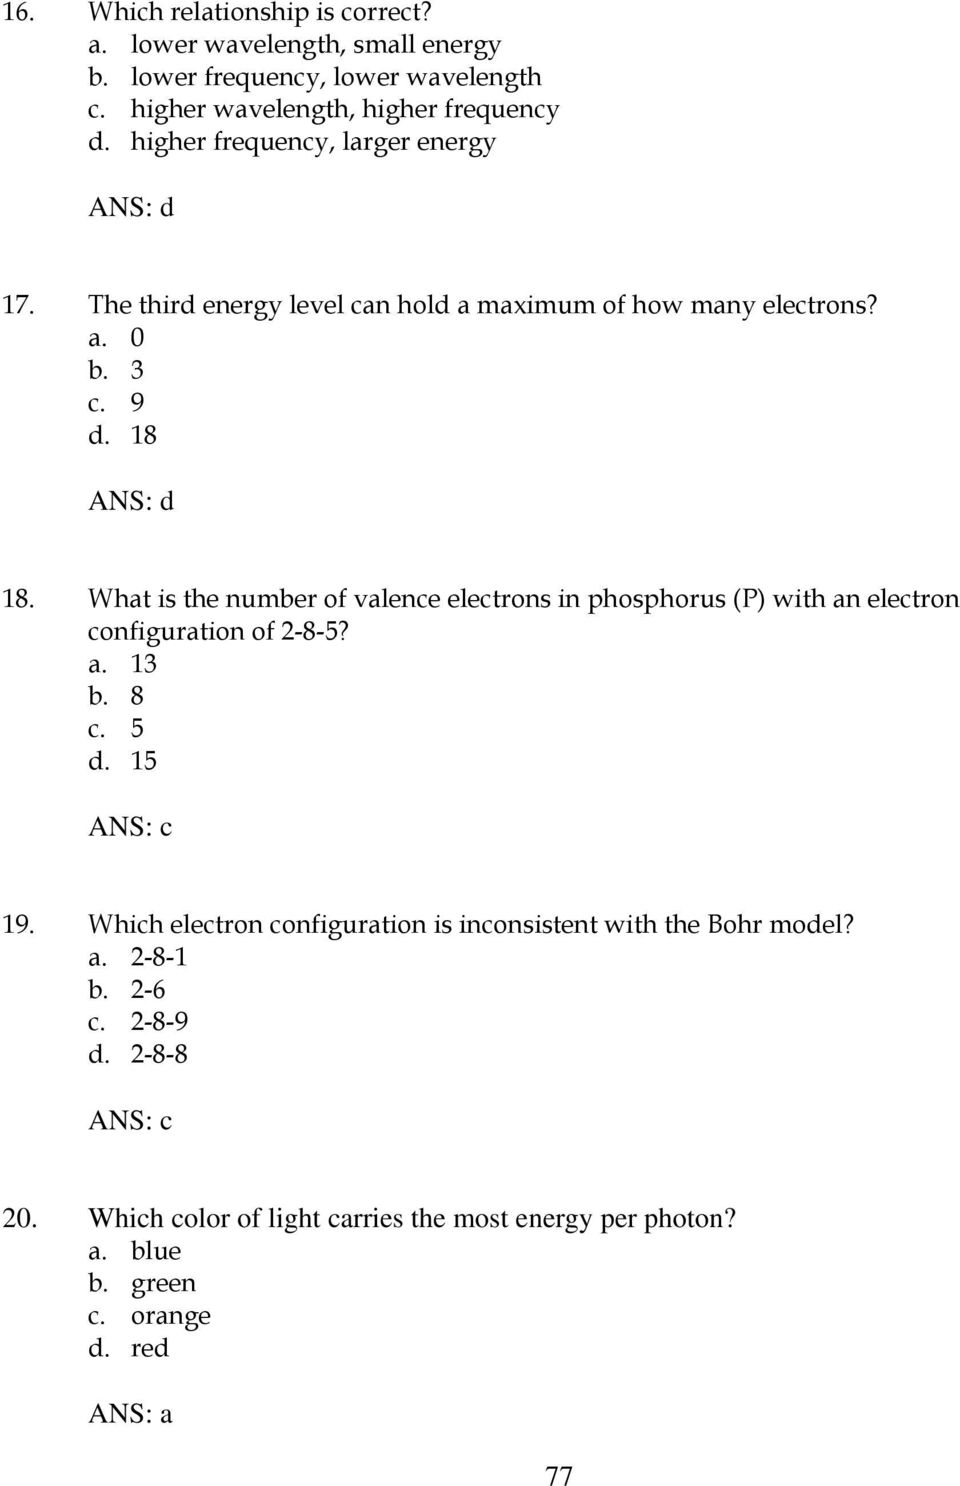 What is the number of valence electrons in phosphorus (P) with an electron configuration of 2-8-5? a. 13 b. 8 c. 5 d. 15 19.